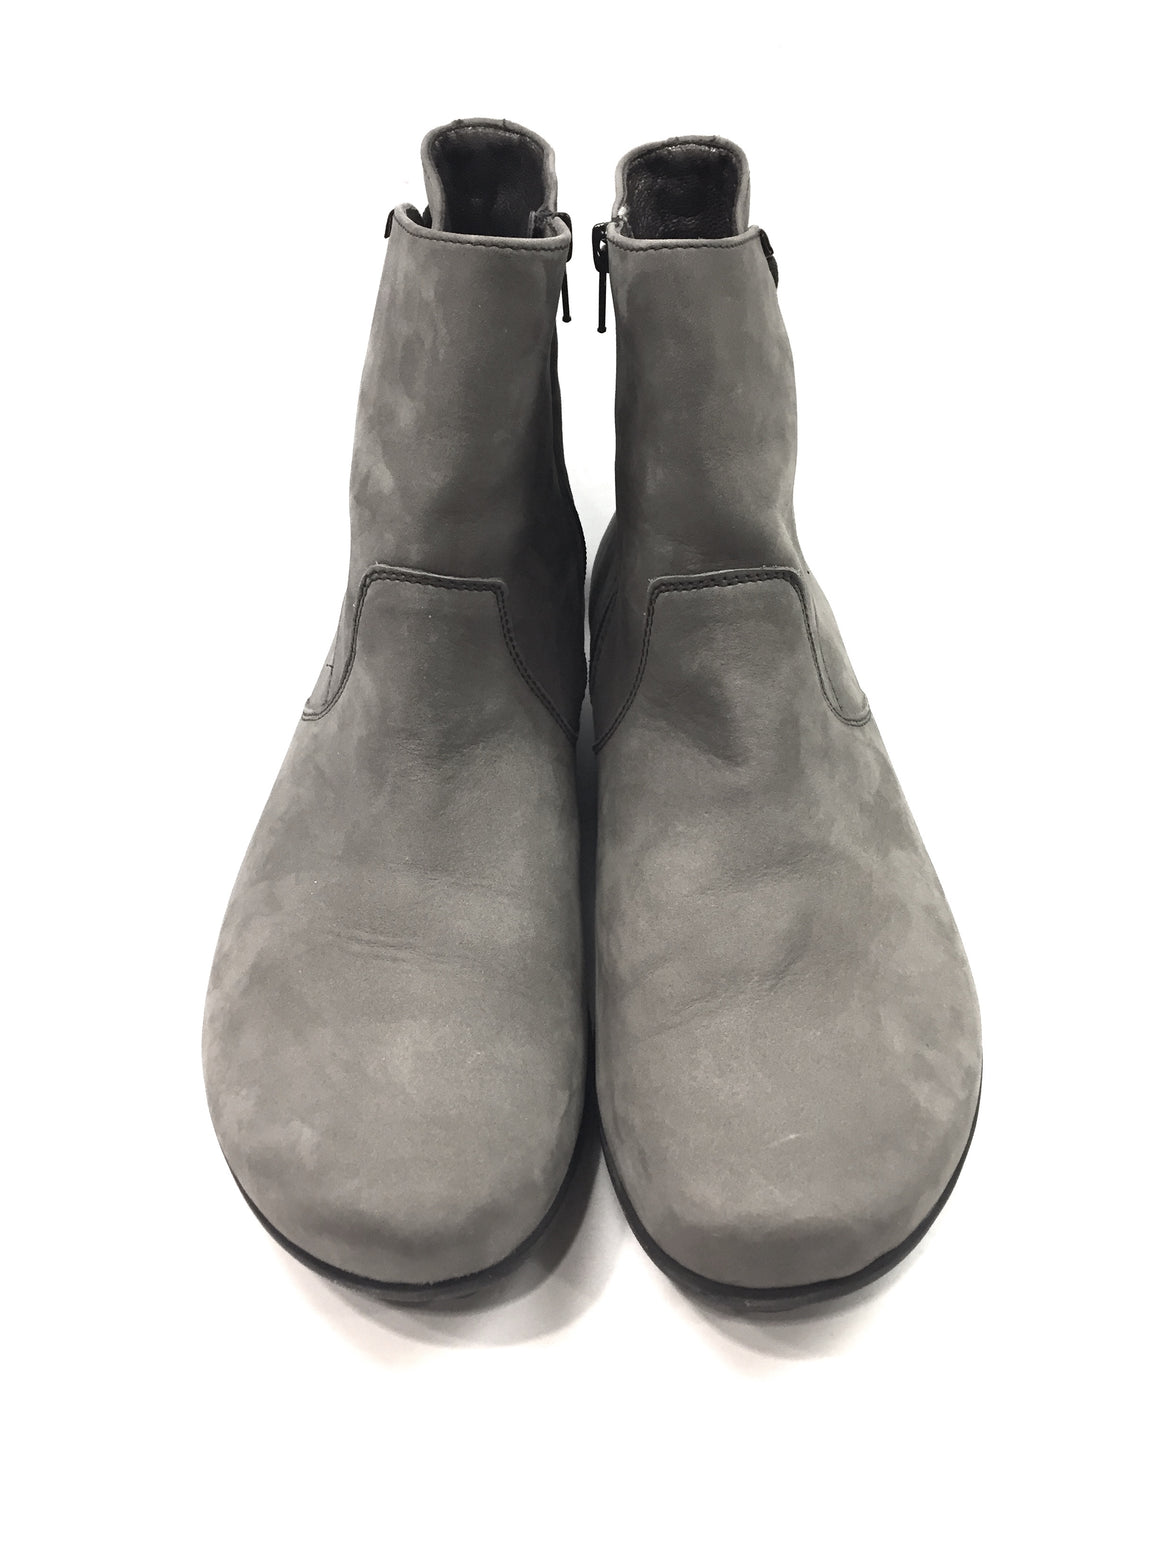 MEPHISTO Gray Suede Black Rubber Soles AIR JET Flat Ankle Boots Booties SzEU6/US8.5